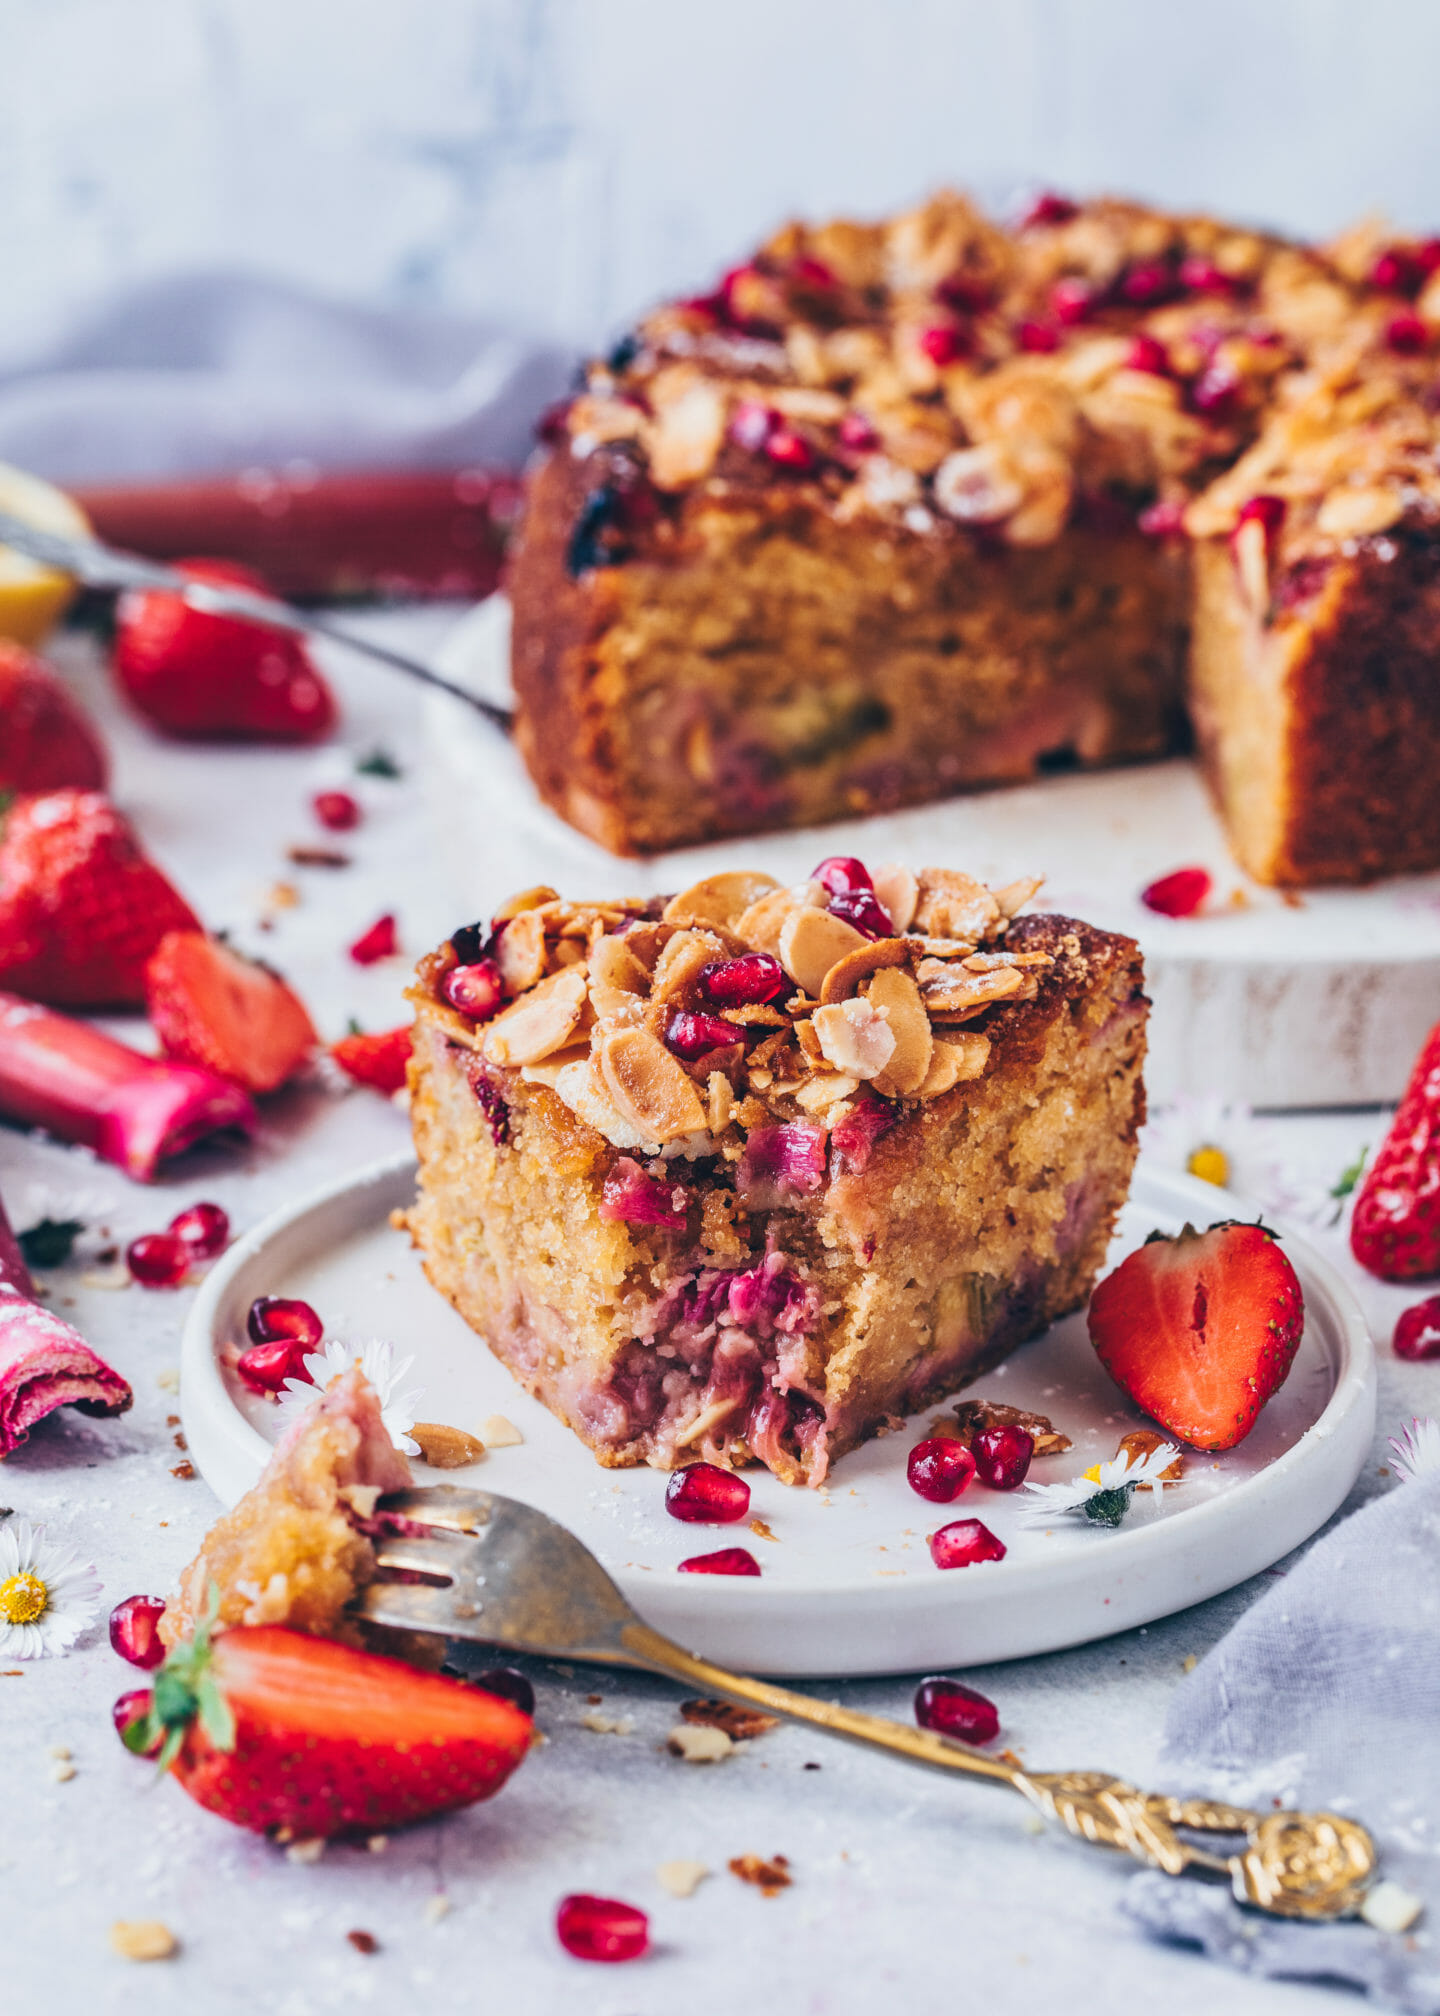 Strawberry Rhubarb Cake with Almonds and pomegranate